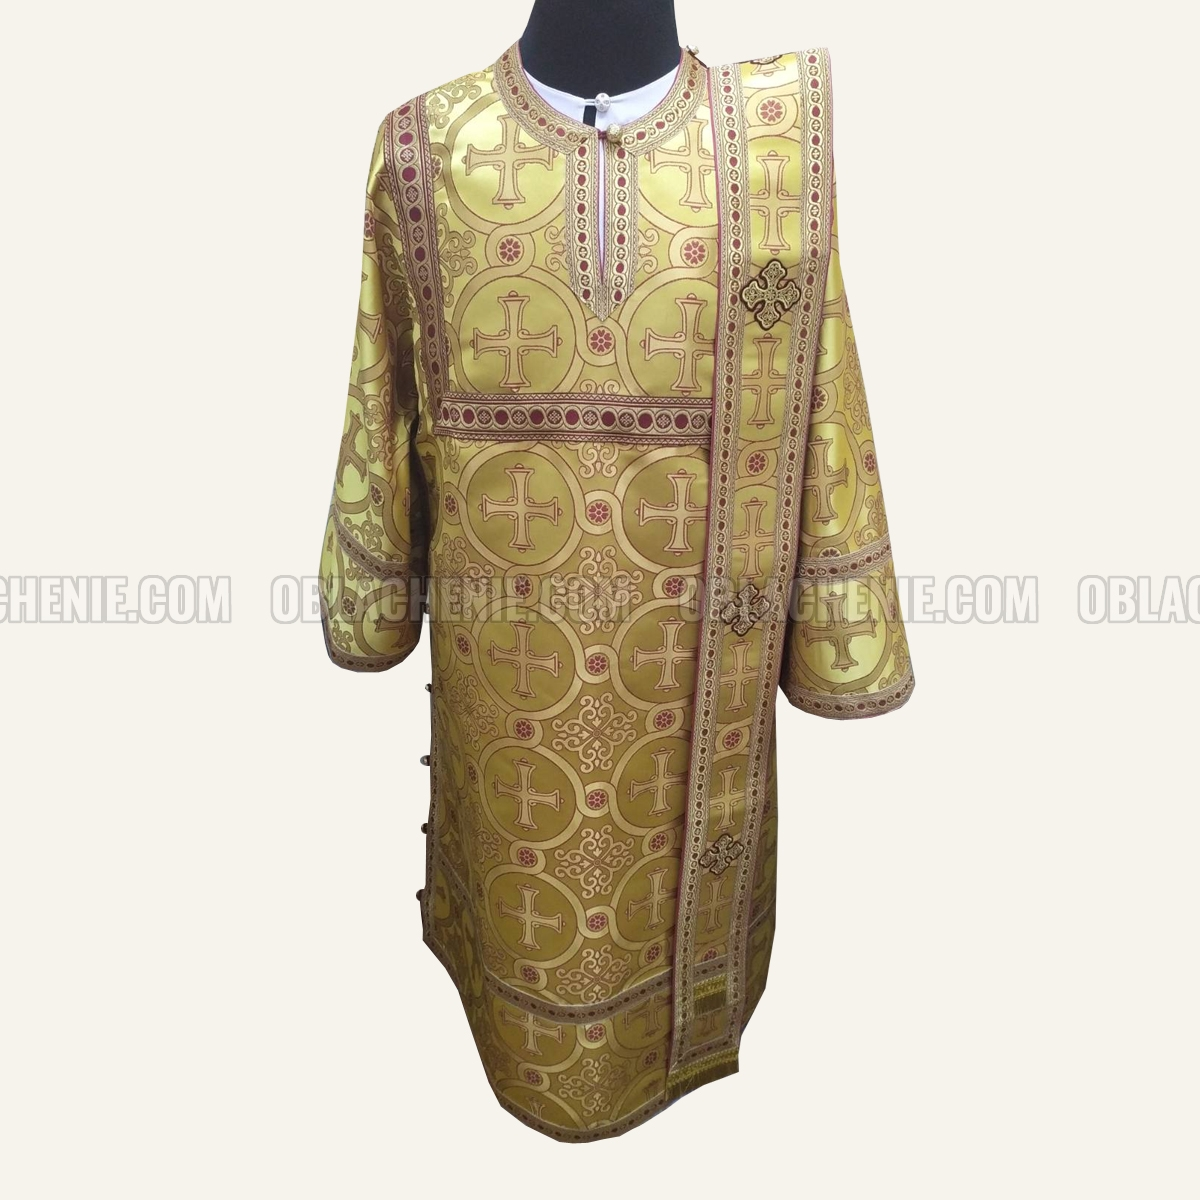 DEACON'S VESTMENTS 10798